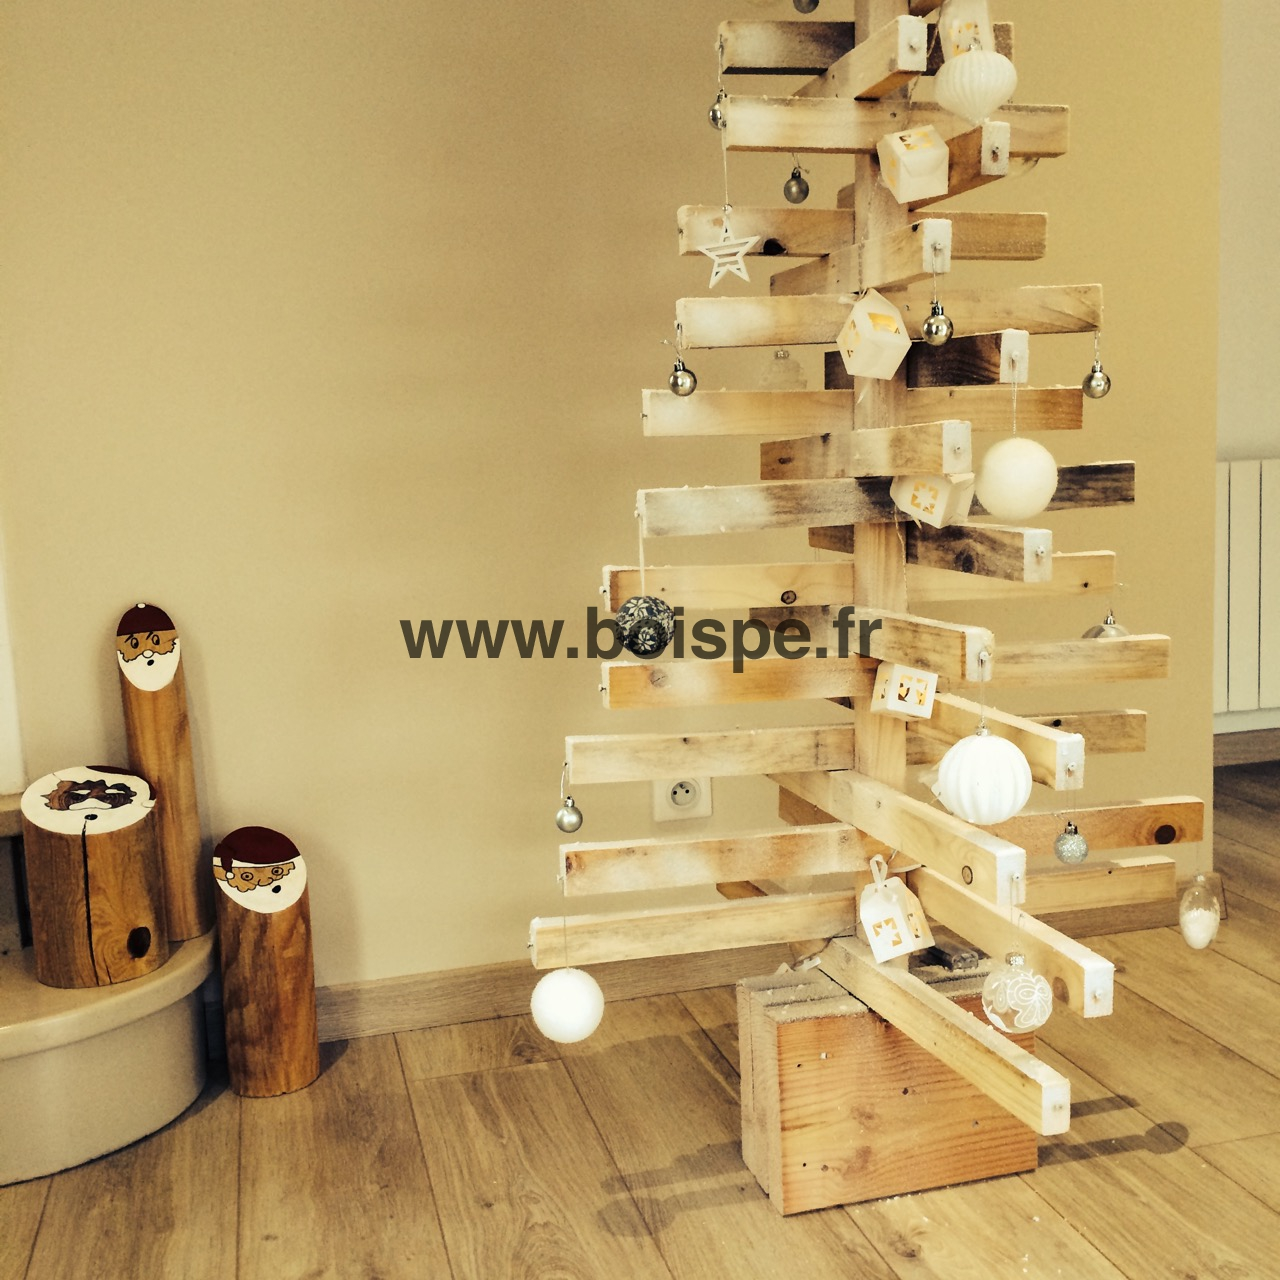 fabriquer un sapin de noel partir du m cano mob. Black Bedroom Furniture Sets. Home Design Ideas